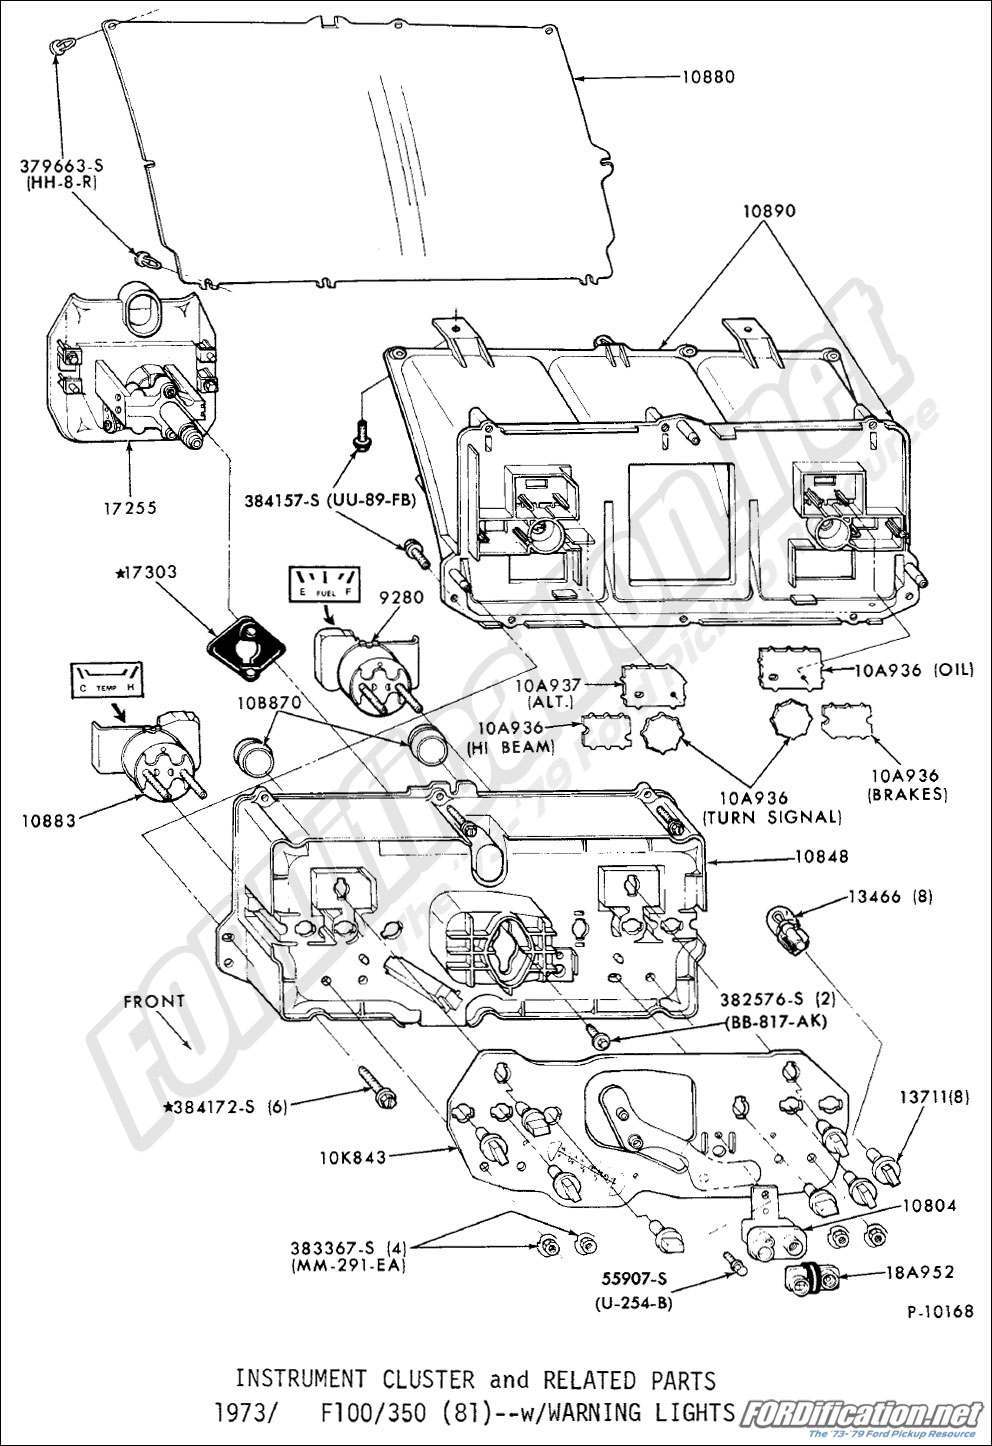 1973 Chevy C20 Wiring Diagram, 1973, Free Engine Image For